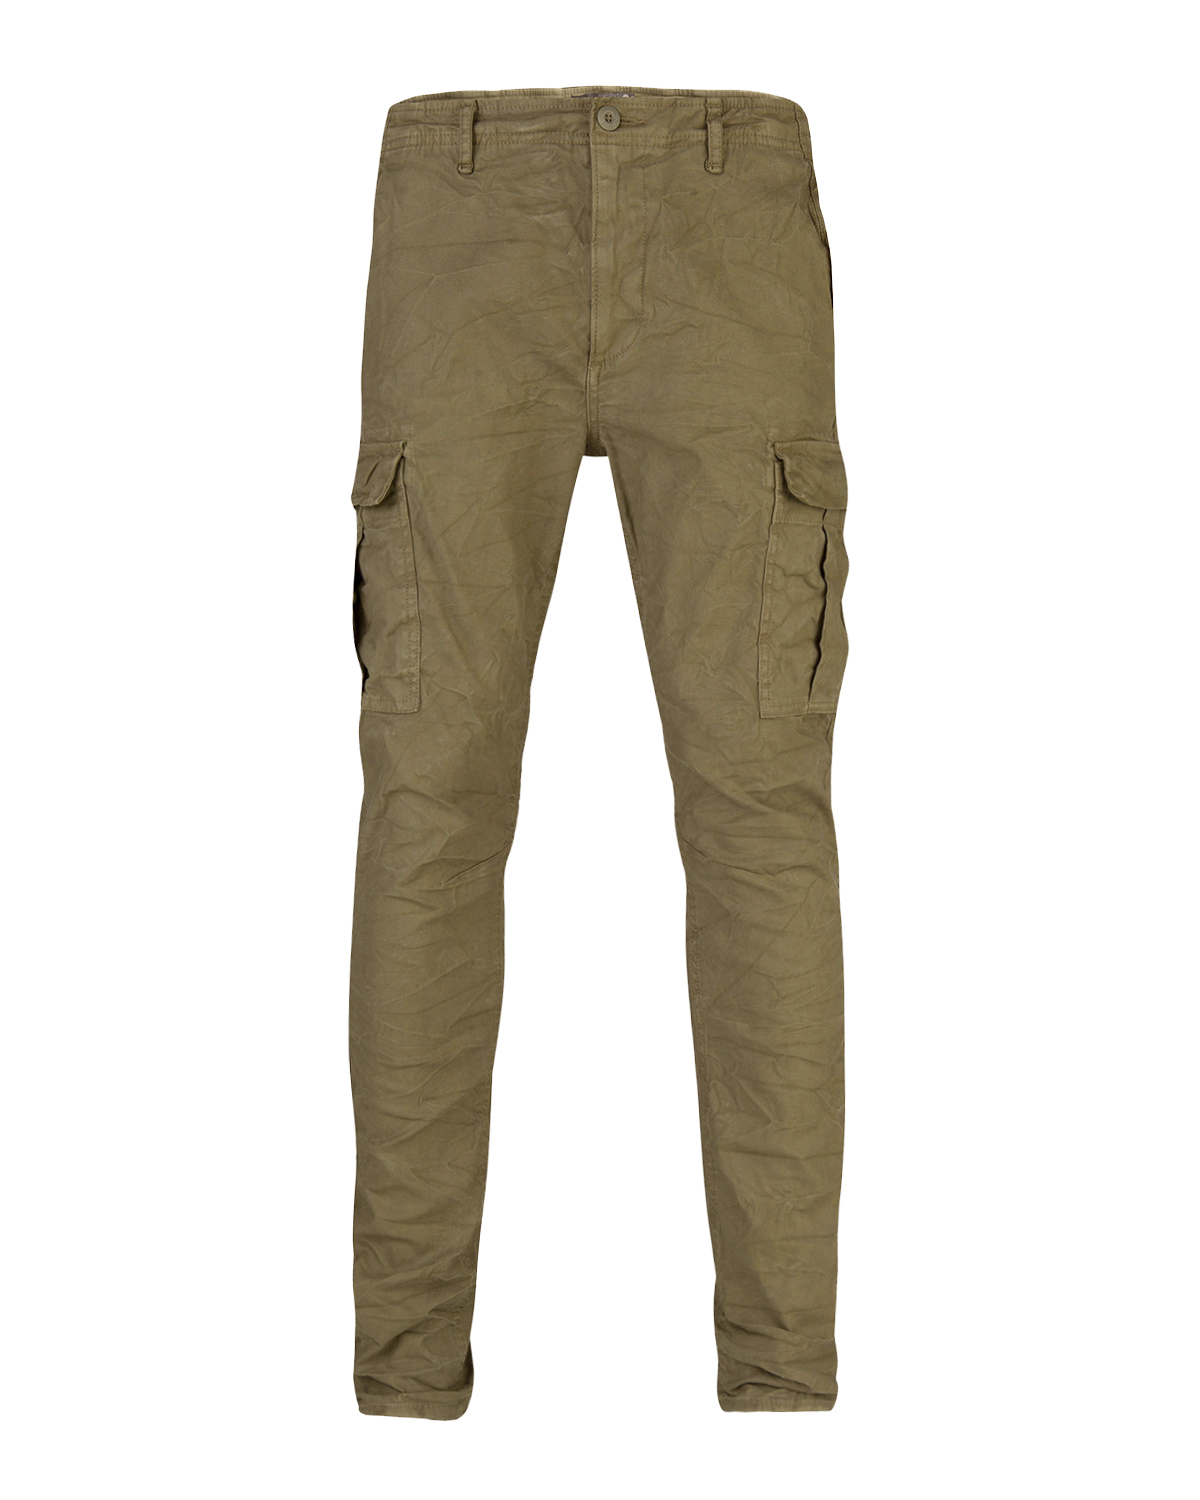 HEREN LOOSE TAPERED CARGO BROEK | 79871013 - WE Fashion